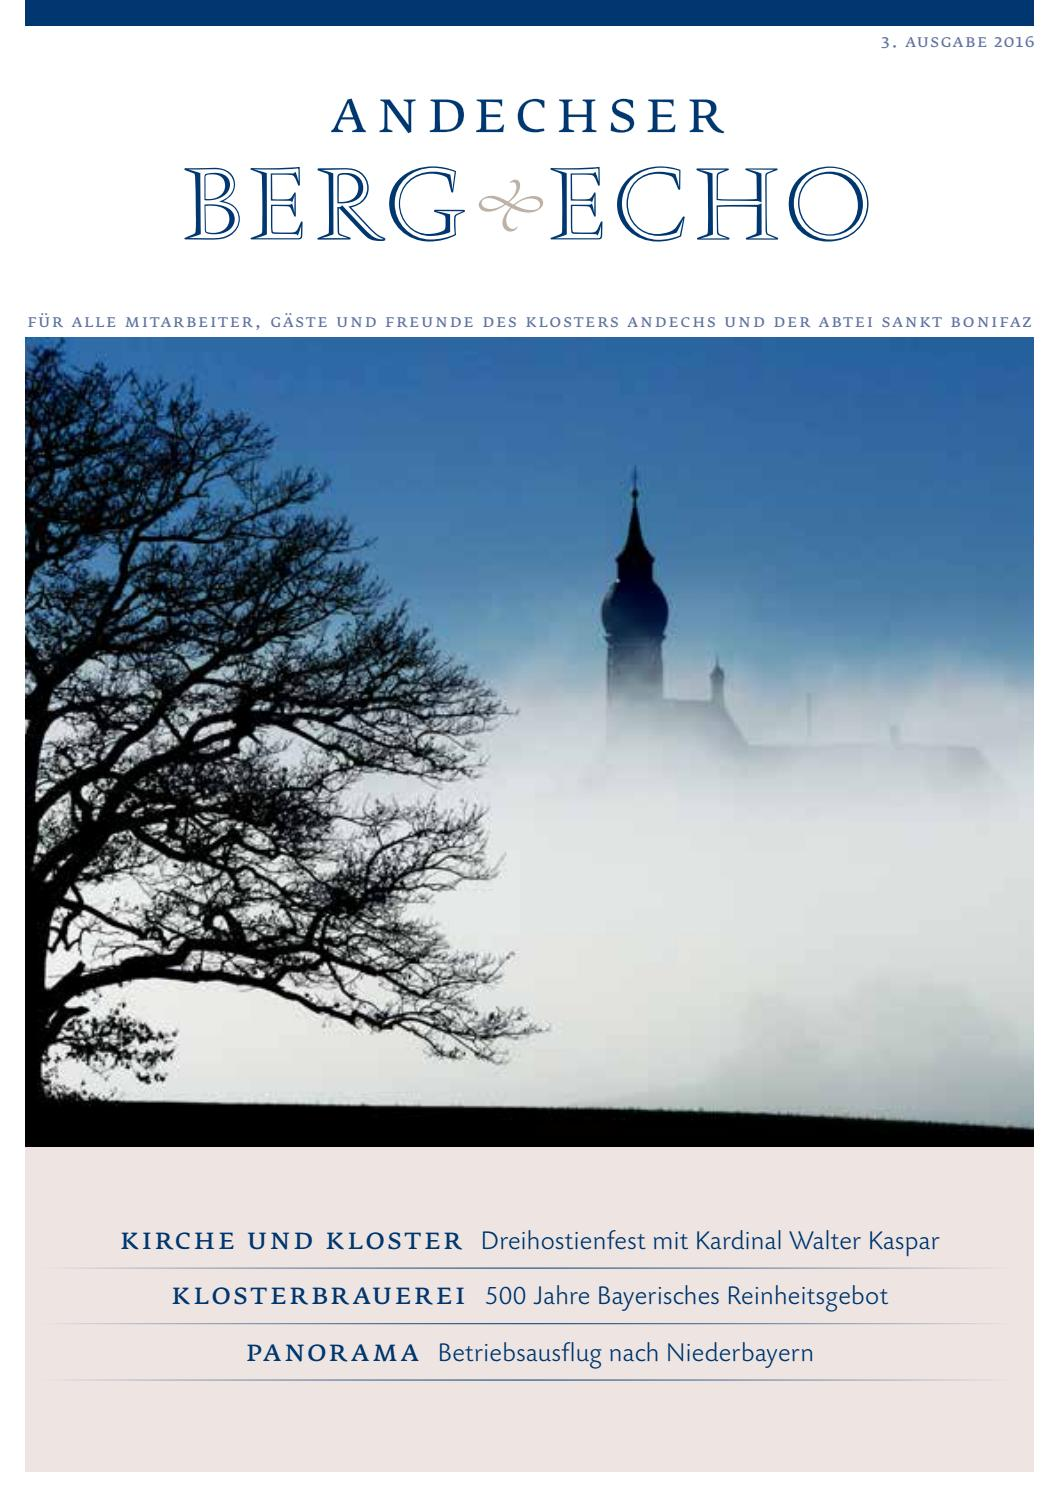 Andechser Bergecho 3-2016 by Sunny Systems GmbH - issuu